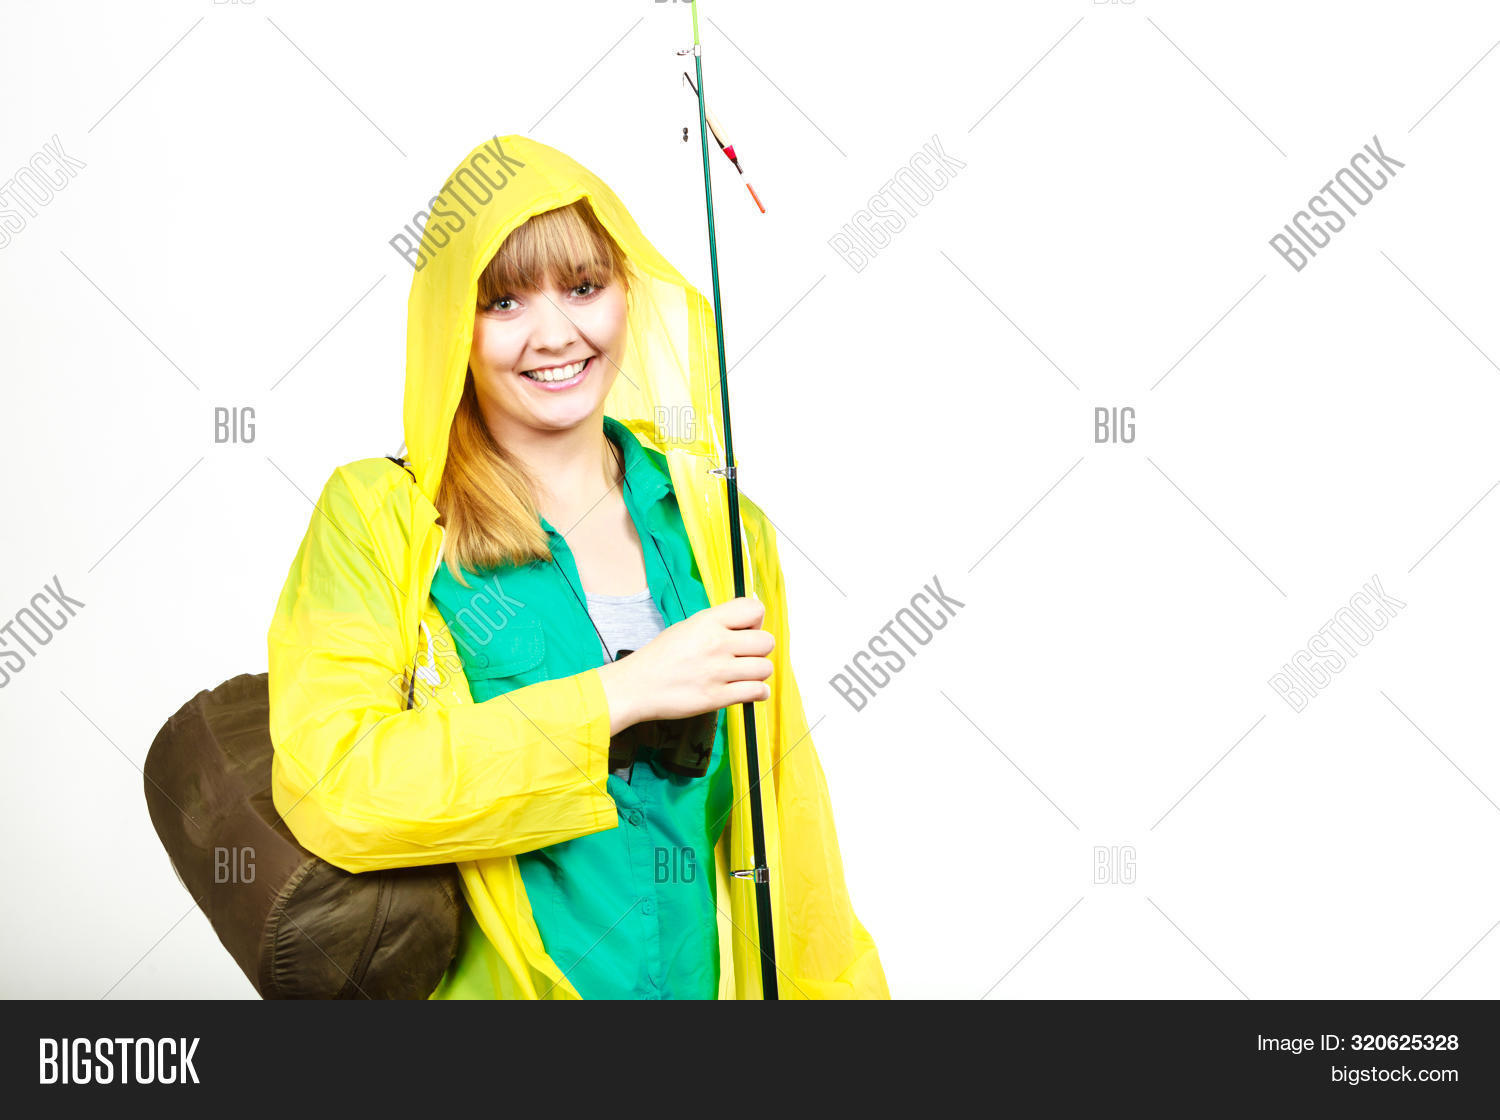 Fishery, Spinning Equipment, Angling Sport And Activity Concept. Woman Wearing Raincoat Holding Fish